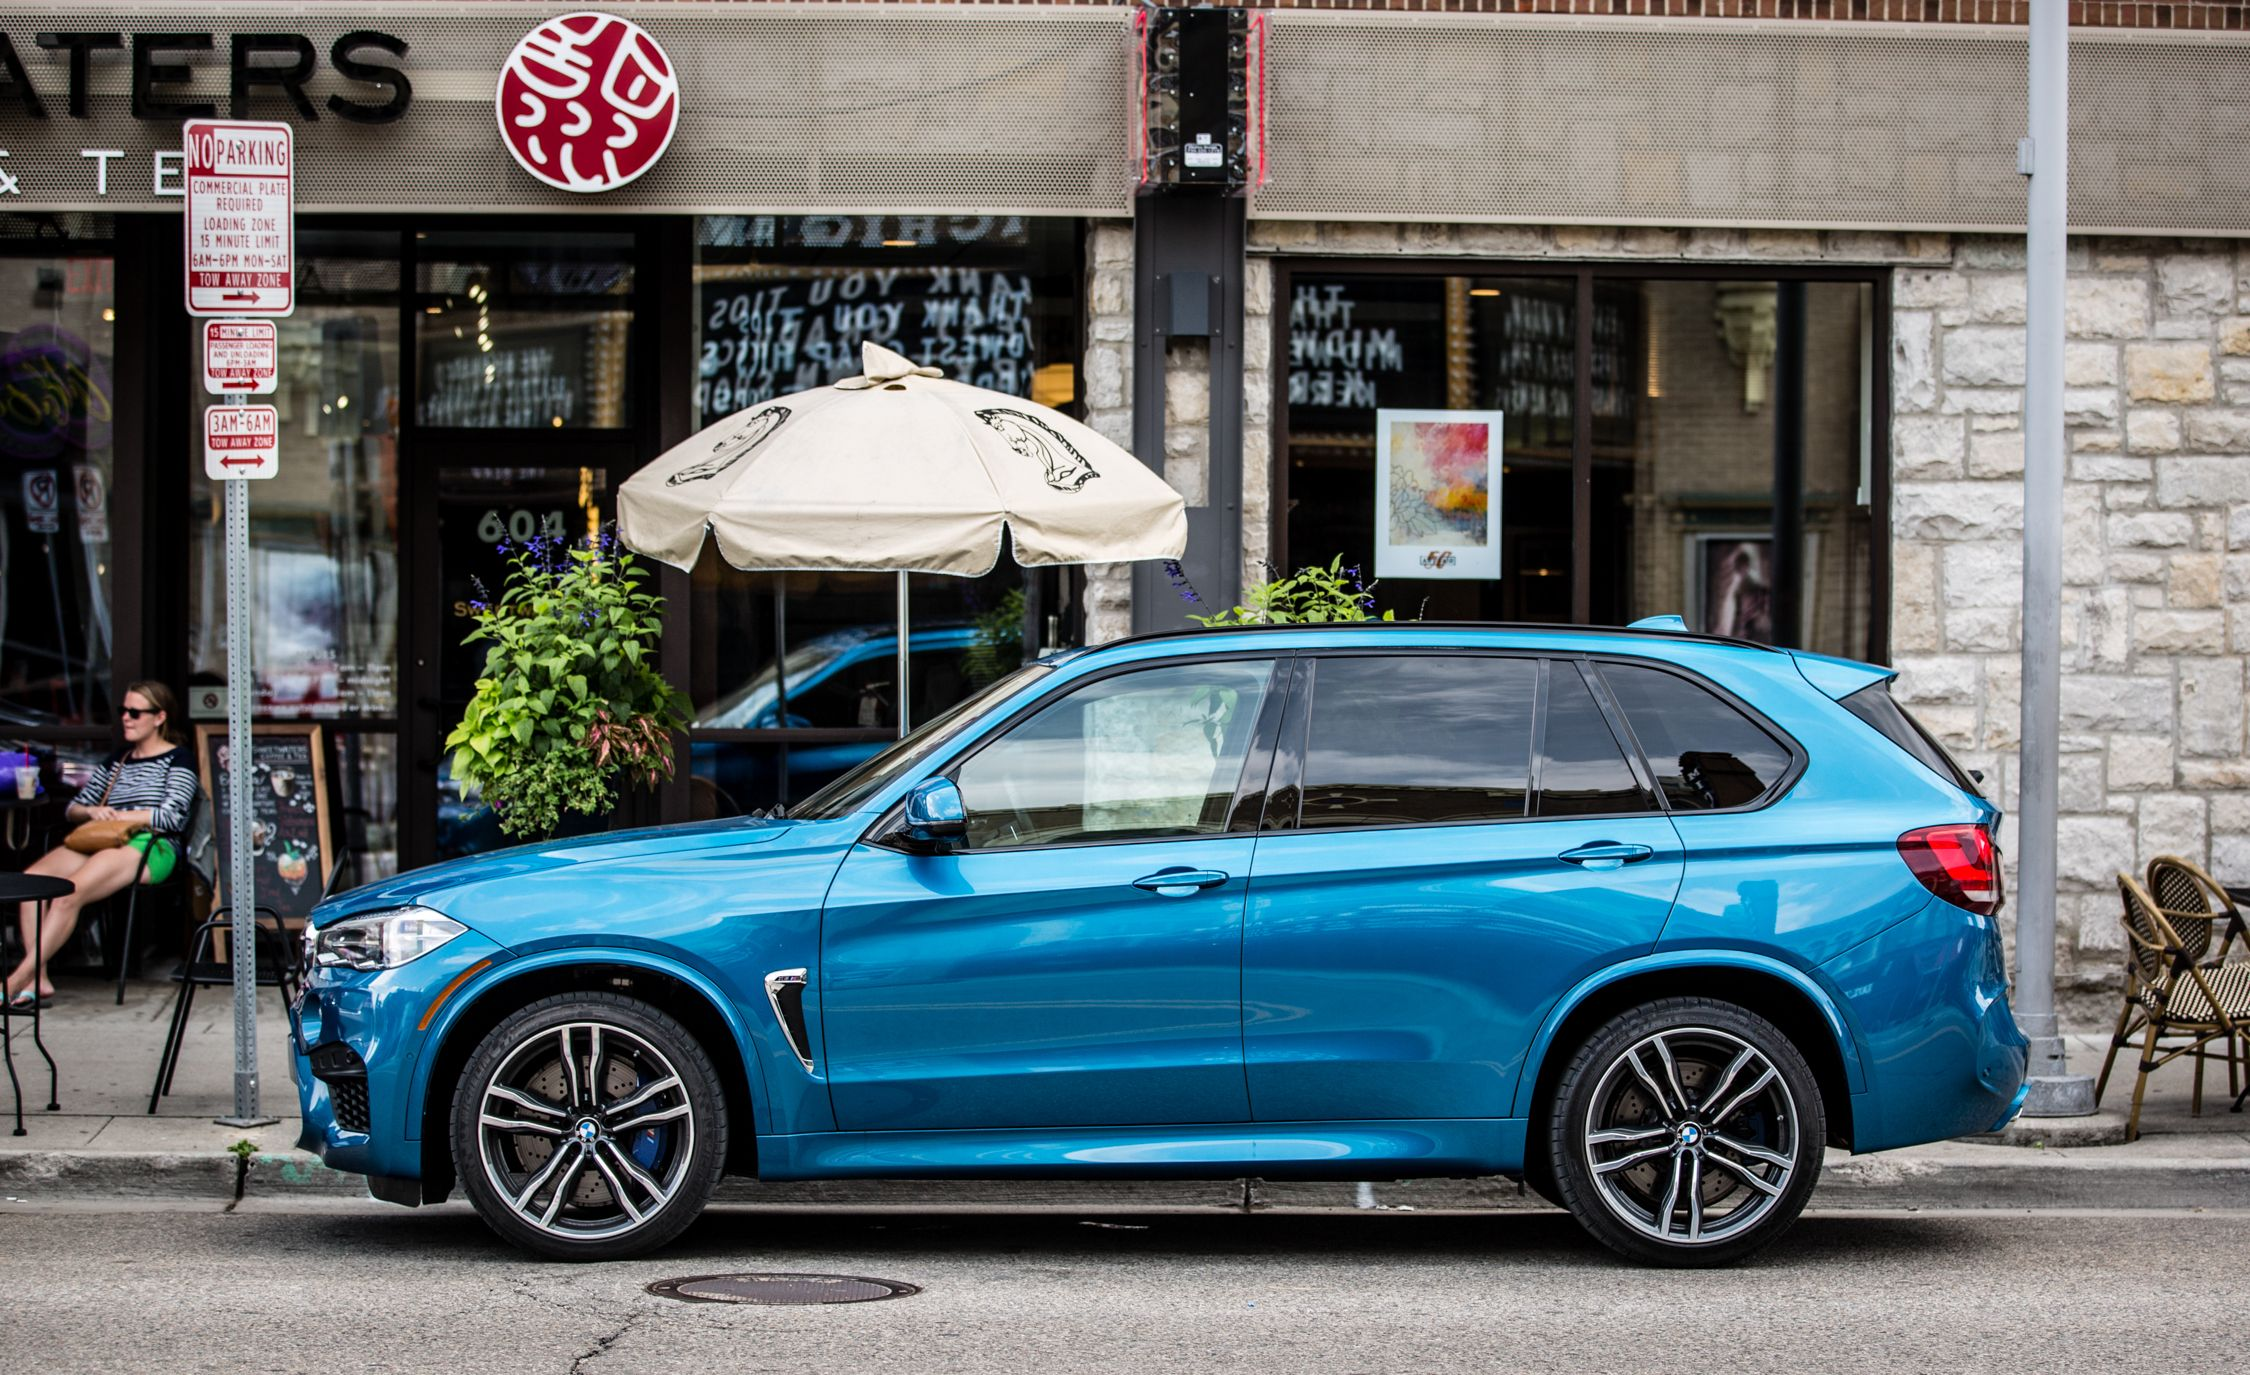 2019 Bmw X5 M Reviews Bmw X5 M Price Photos And Specs